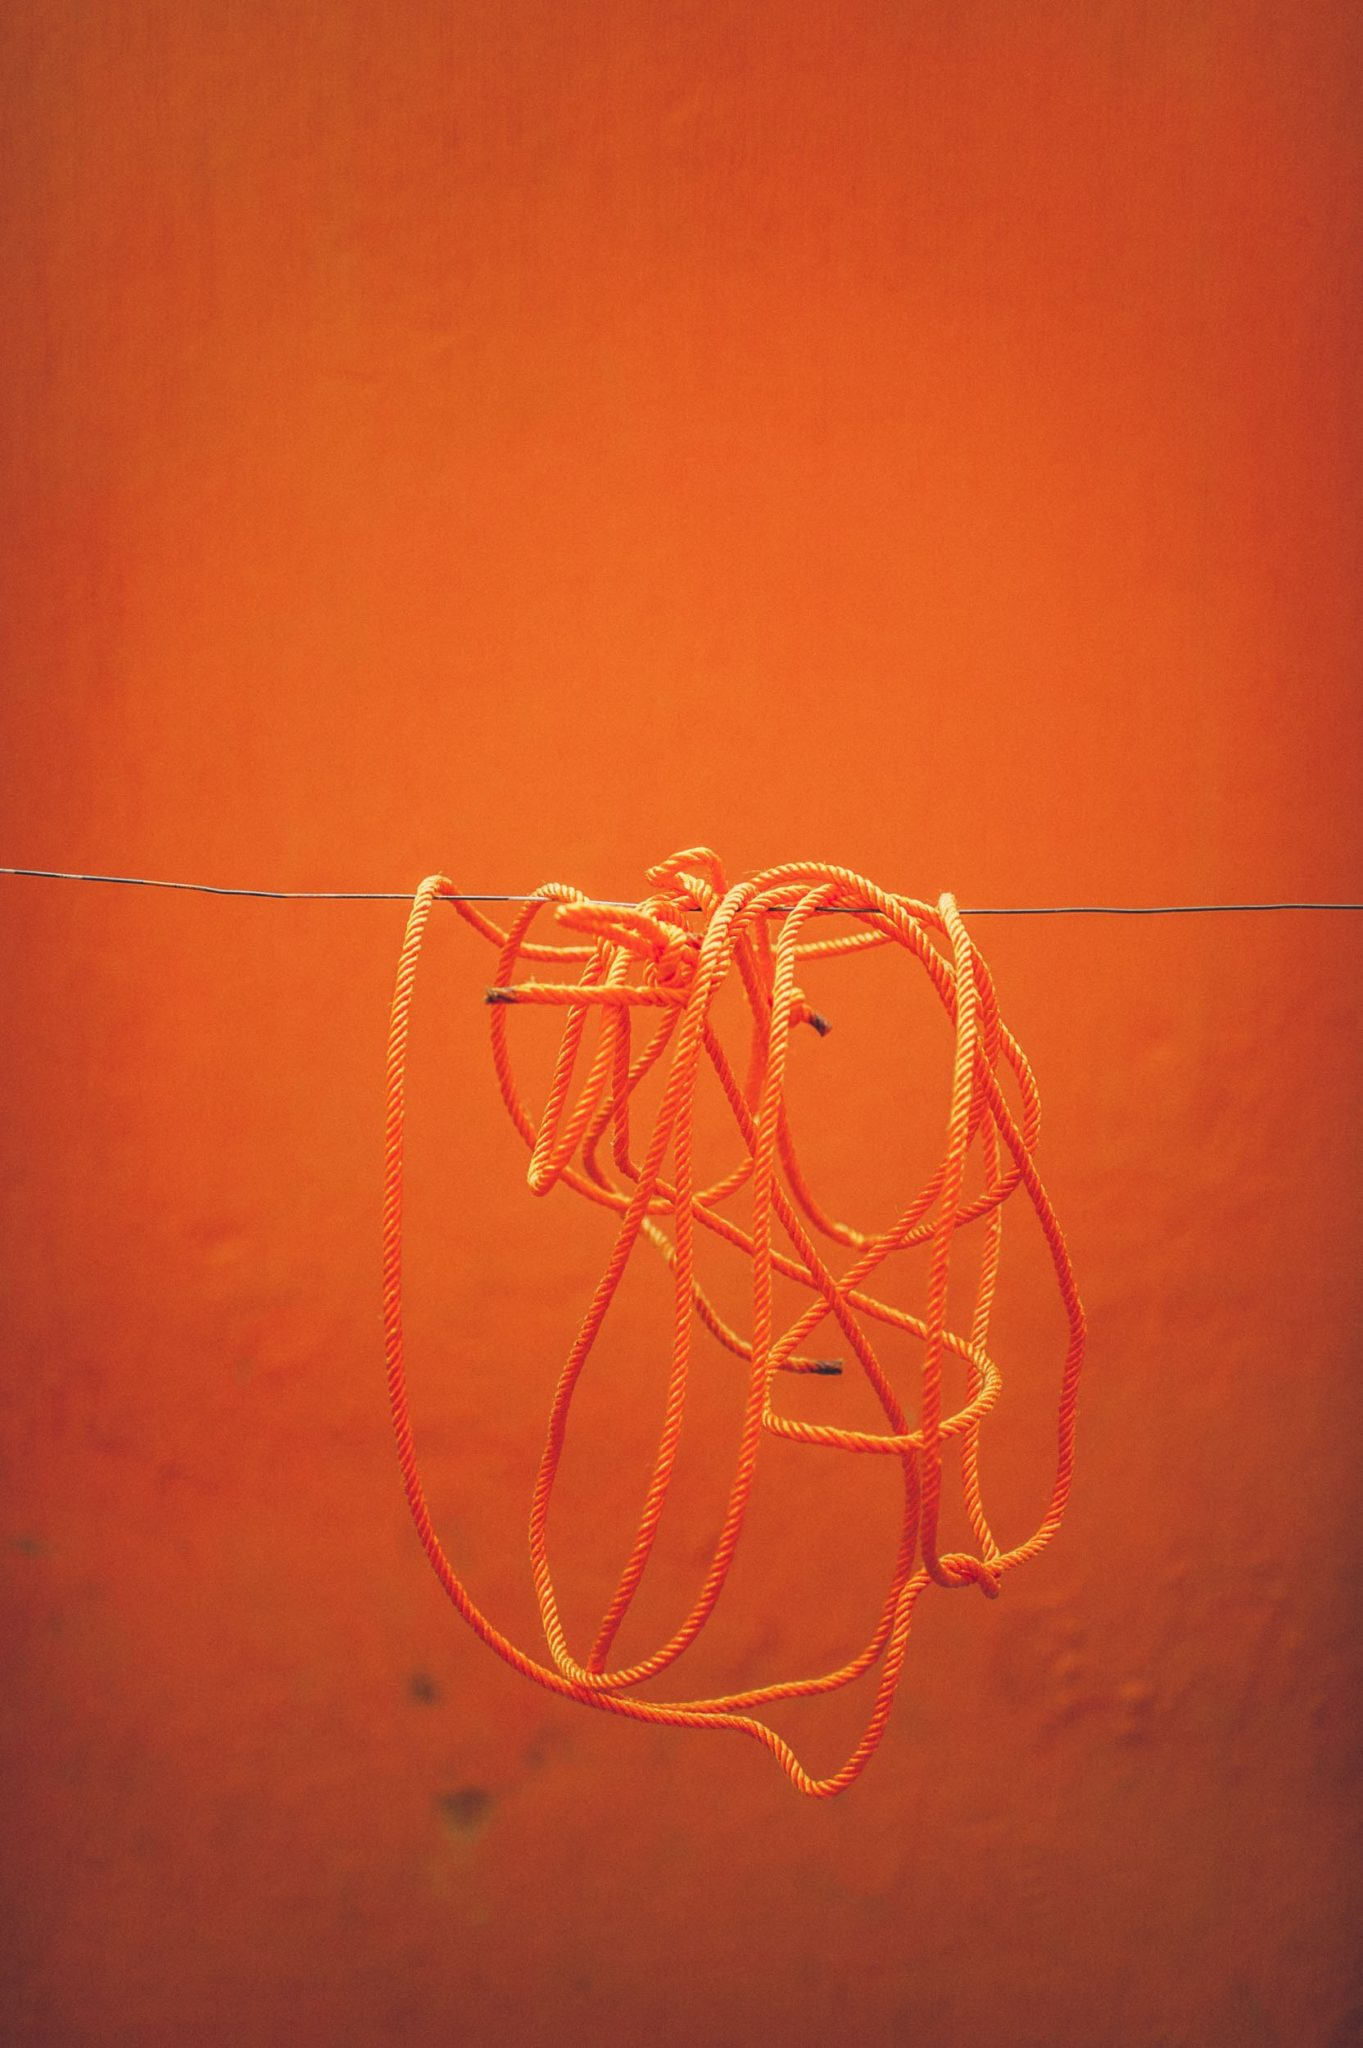 Dangled Tangled, Guatemala Collection. Fine Art Photography.